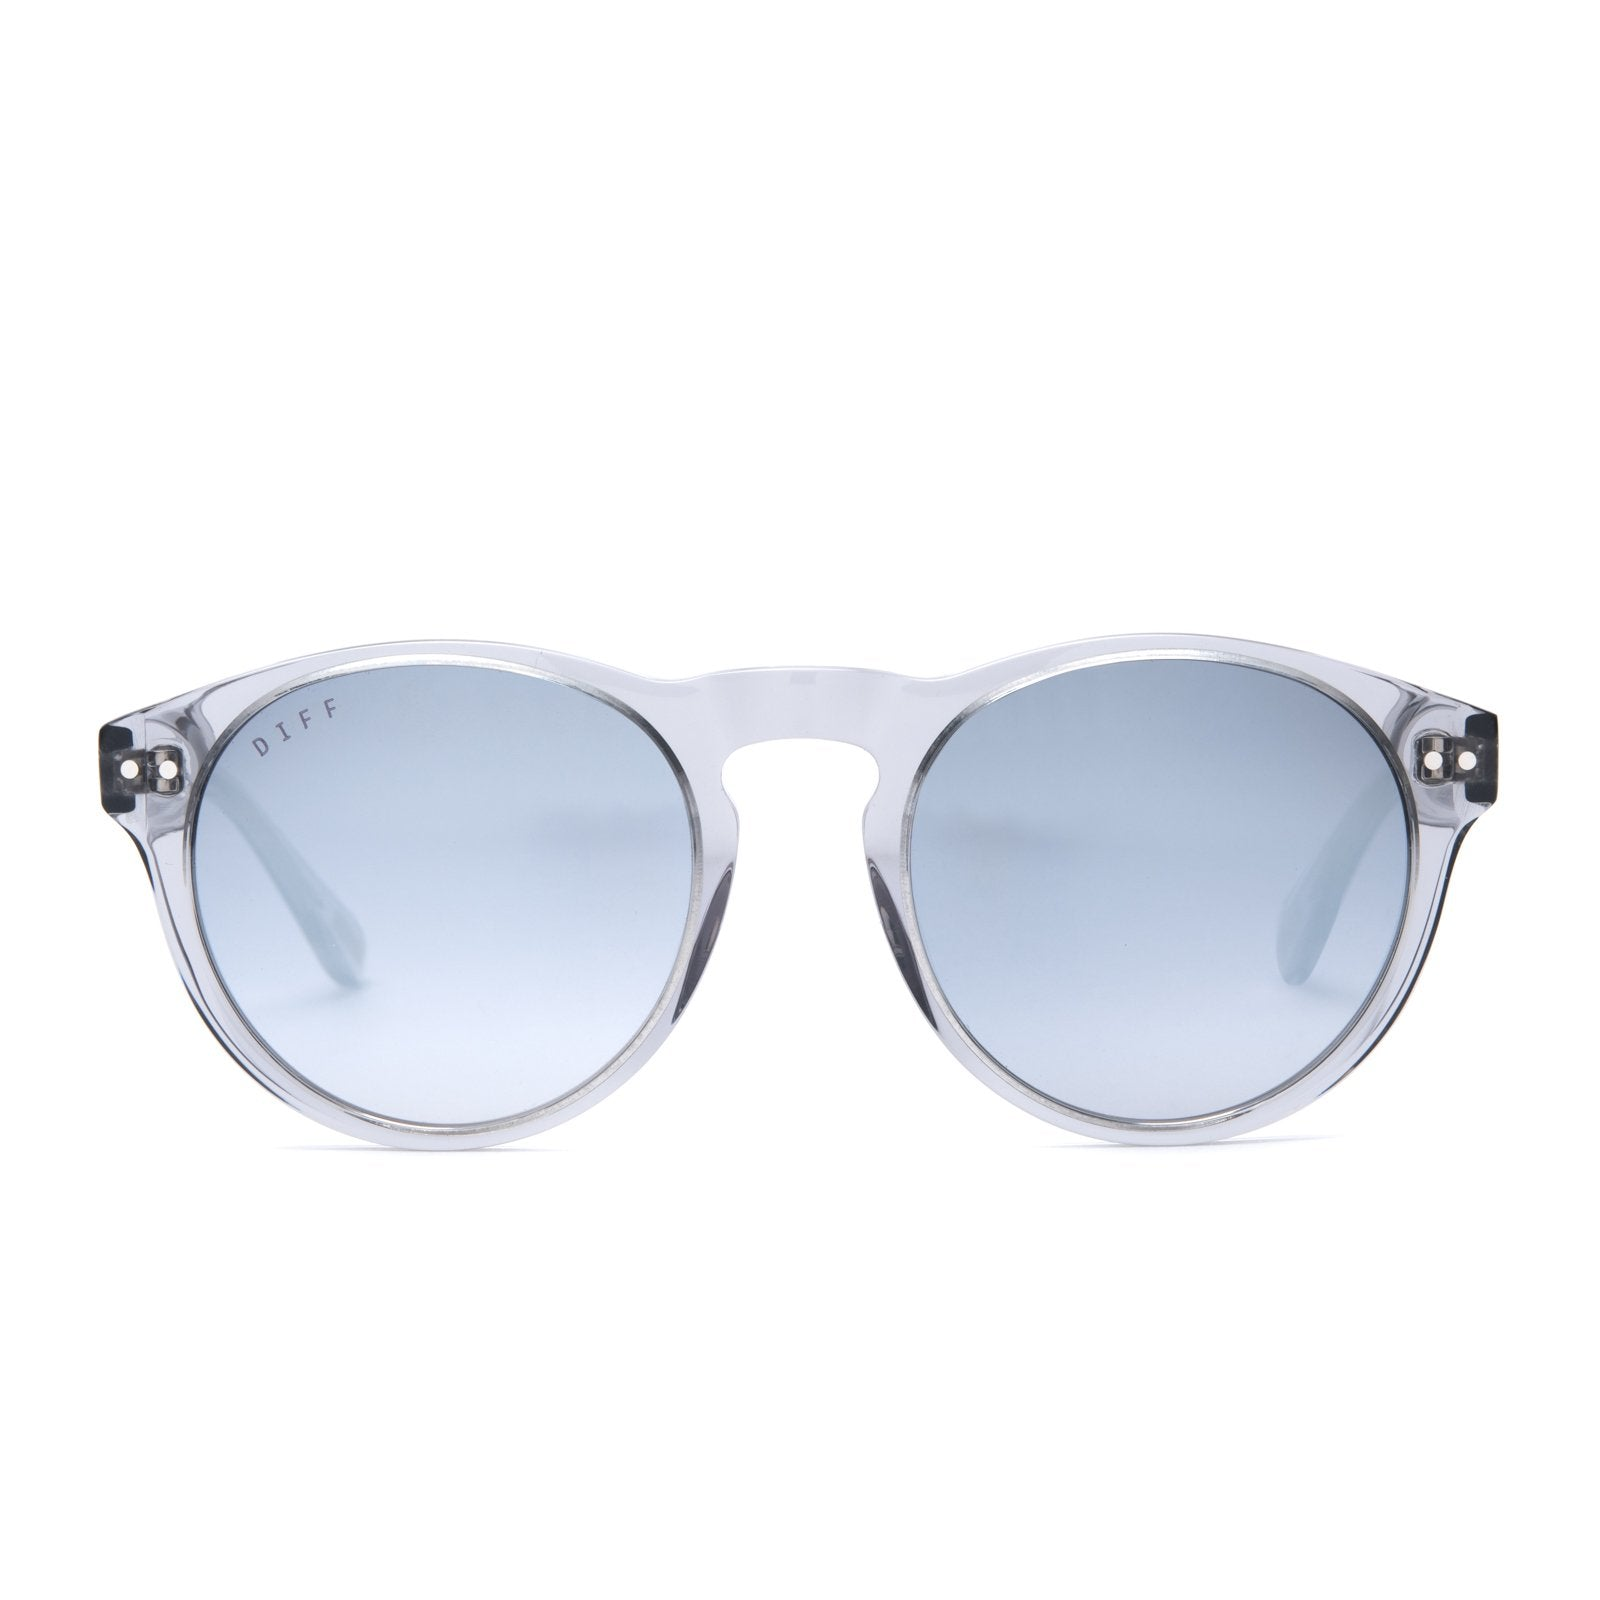 Cody sunglasses with smoke crystal frames and grey mirror lens front view